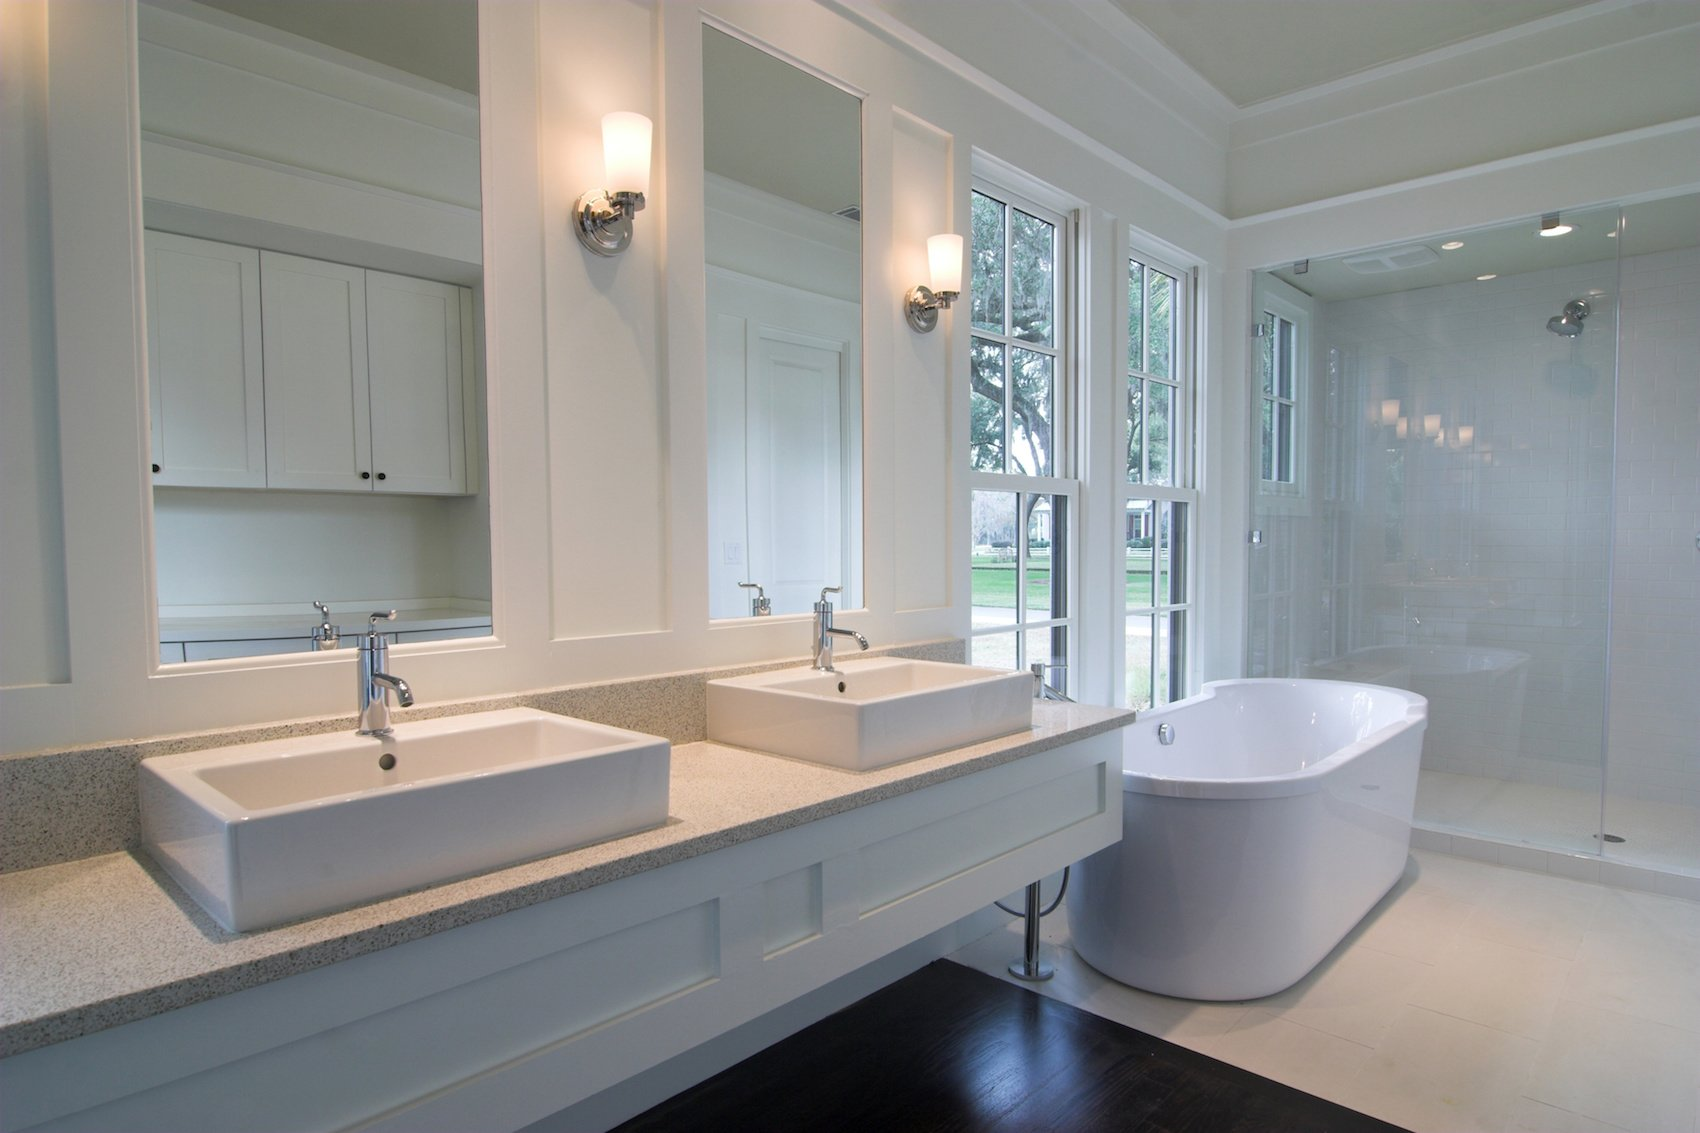 house cleaning service bathroom kelowna all about details cleaning services